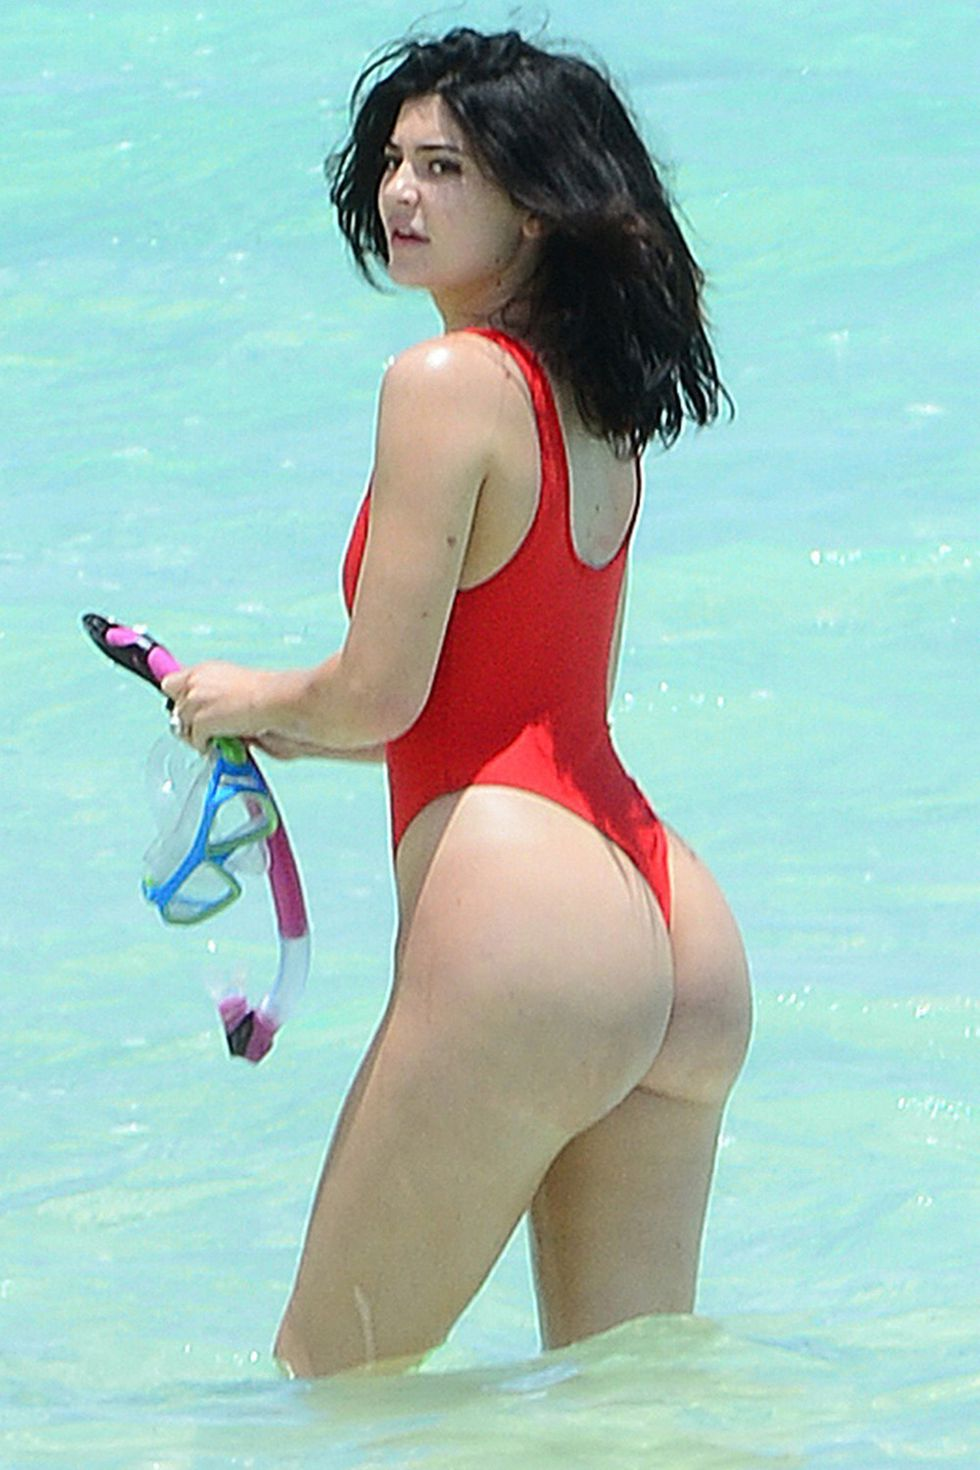 hbz-crazy-swim-kylie-jenner-backgrid-1528400408